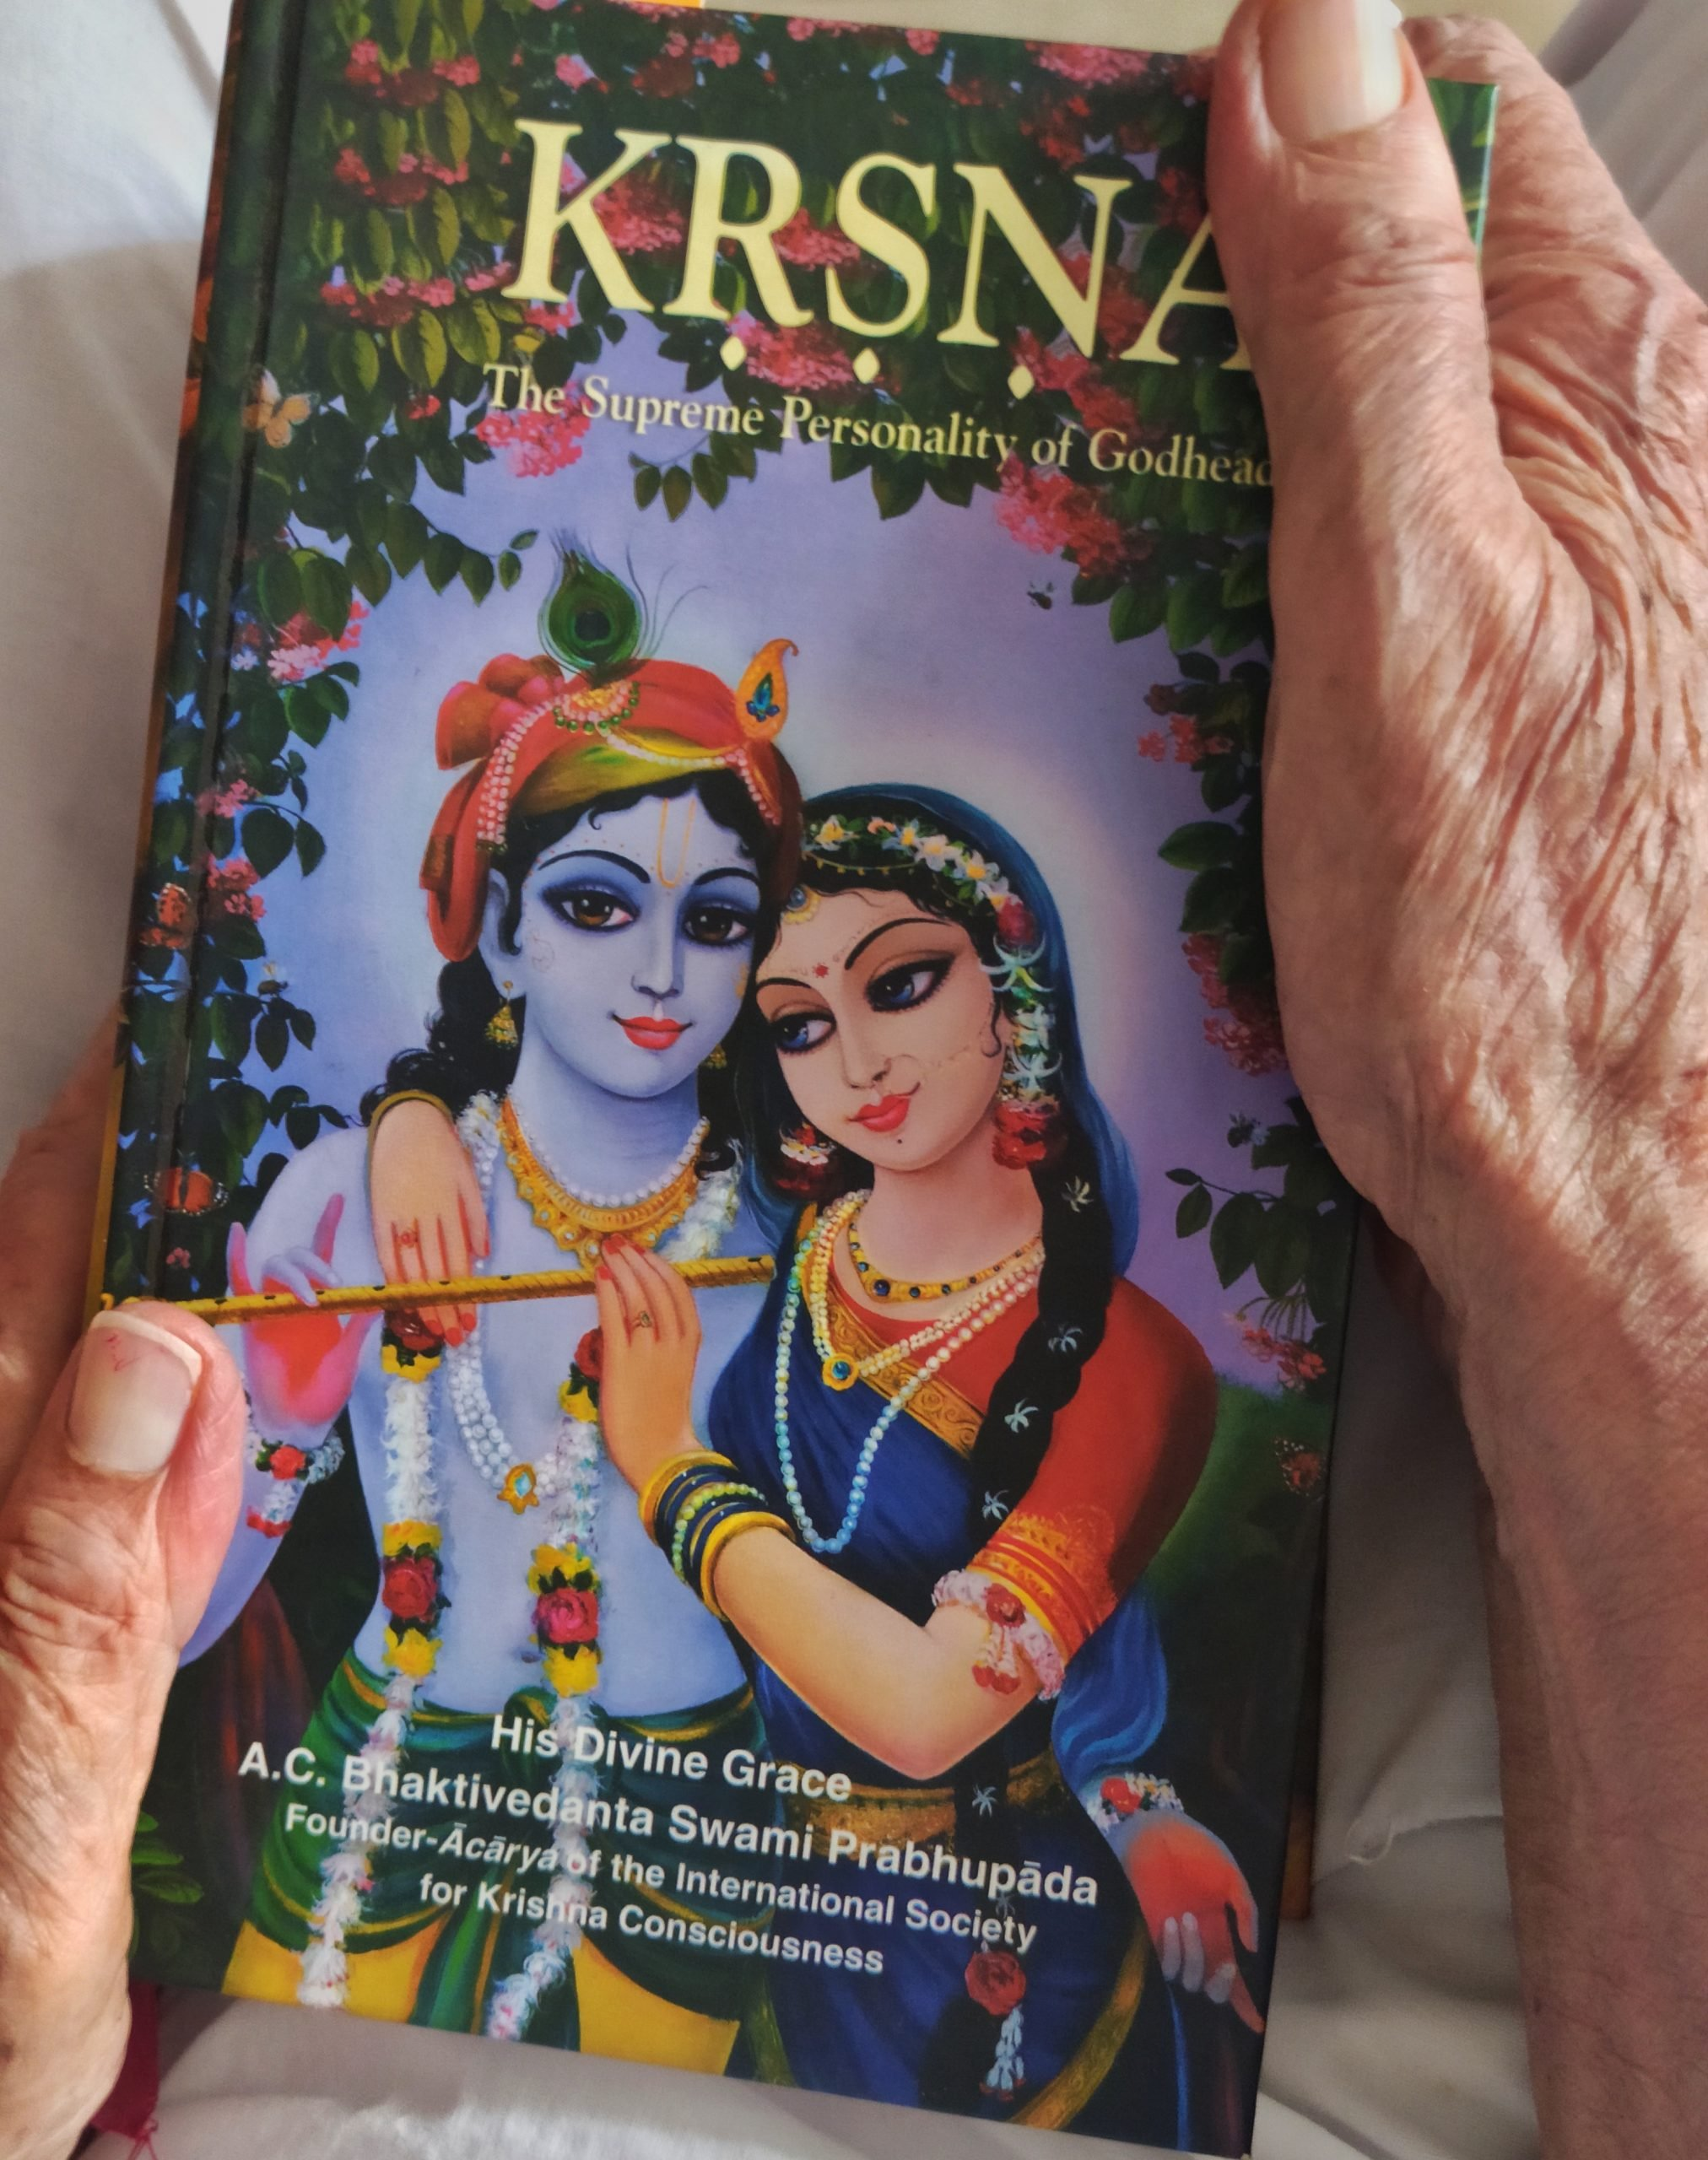 A religious book in hands